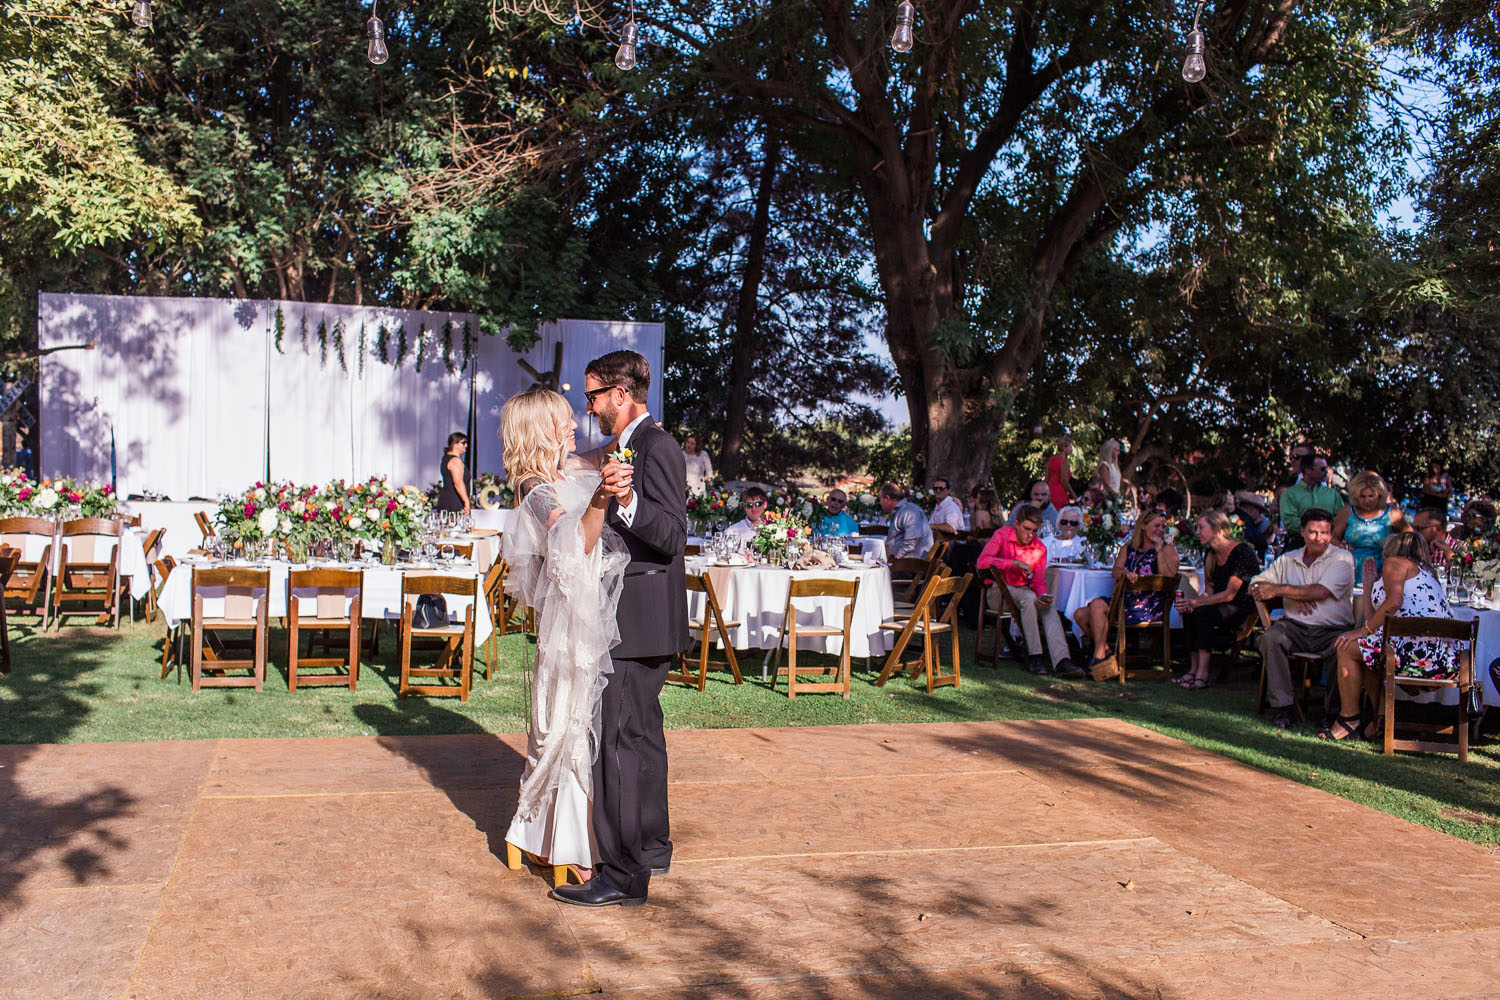 The Photege - Elegant Boho Wedding on Suburu Farm in Bakersfield California- Cassie and Darin Buoni-3049